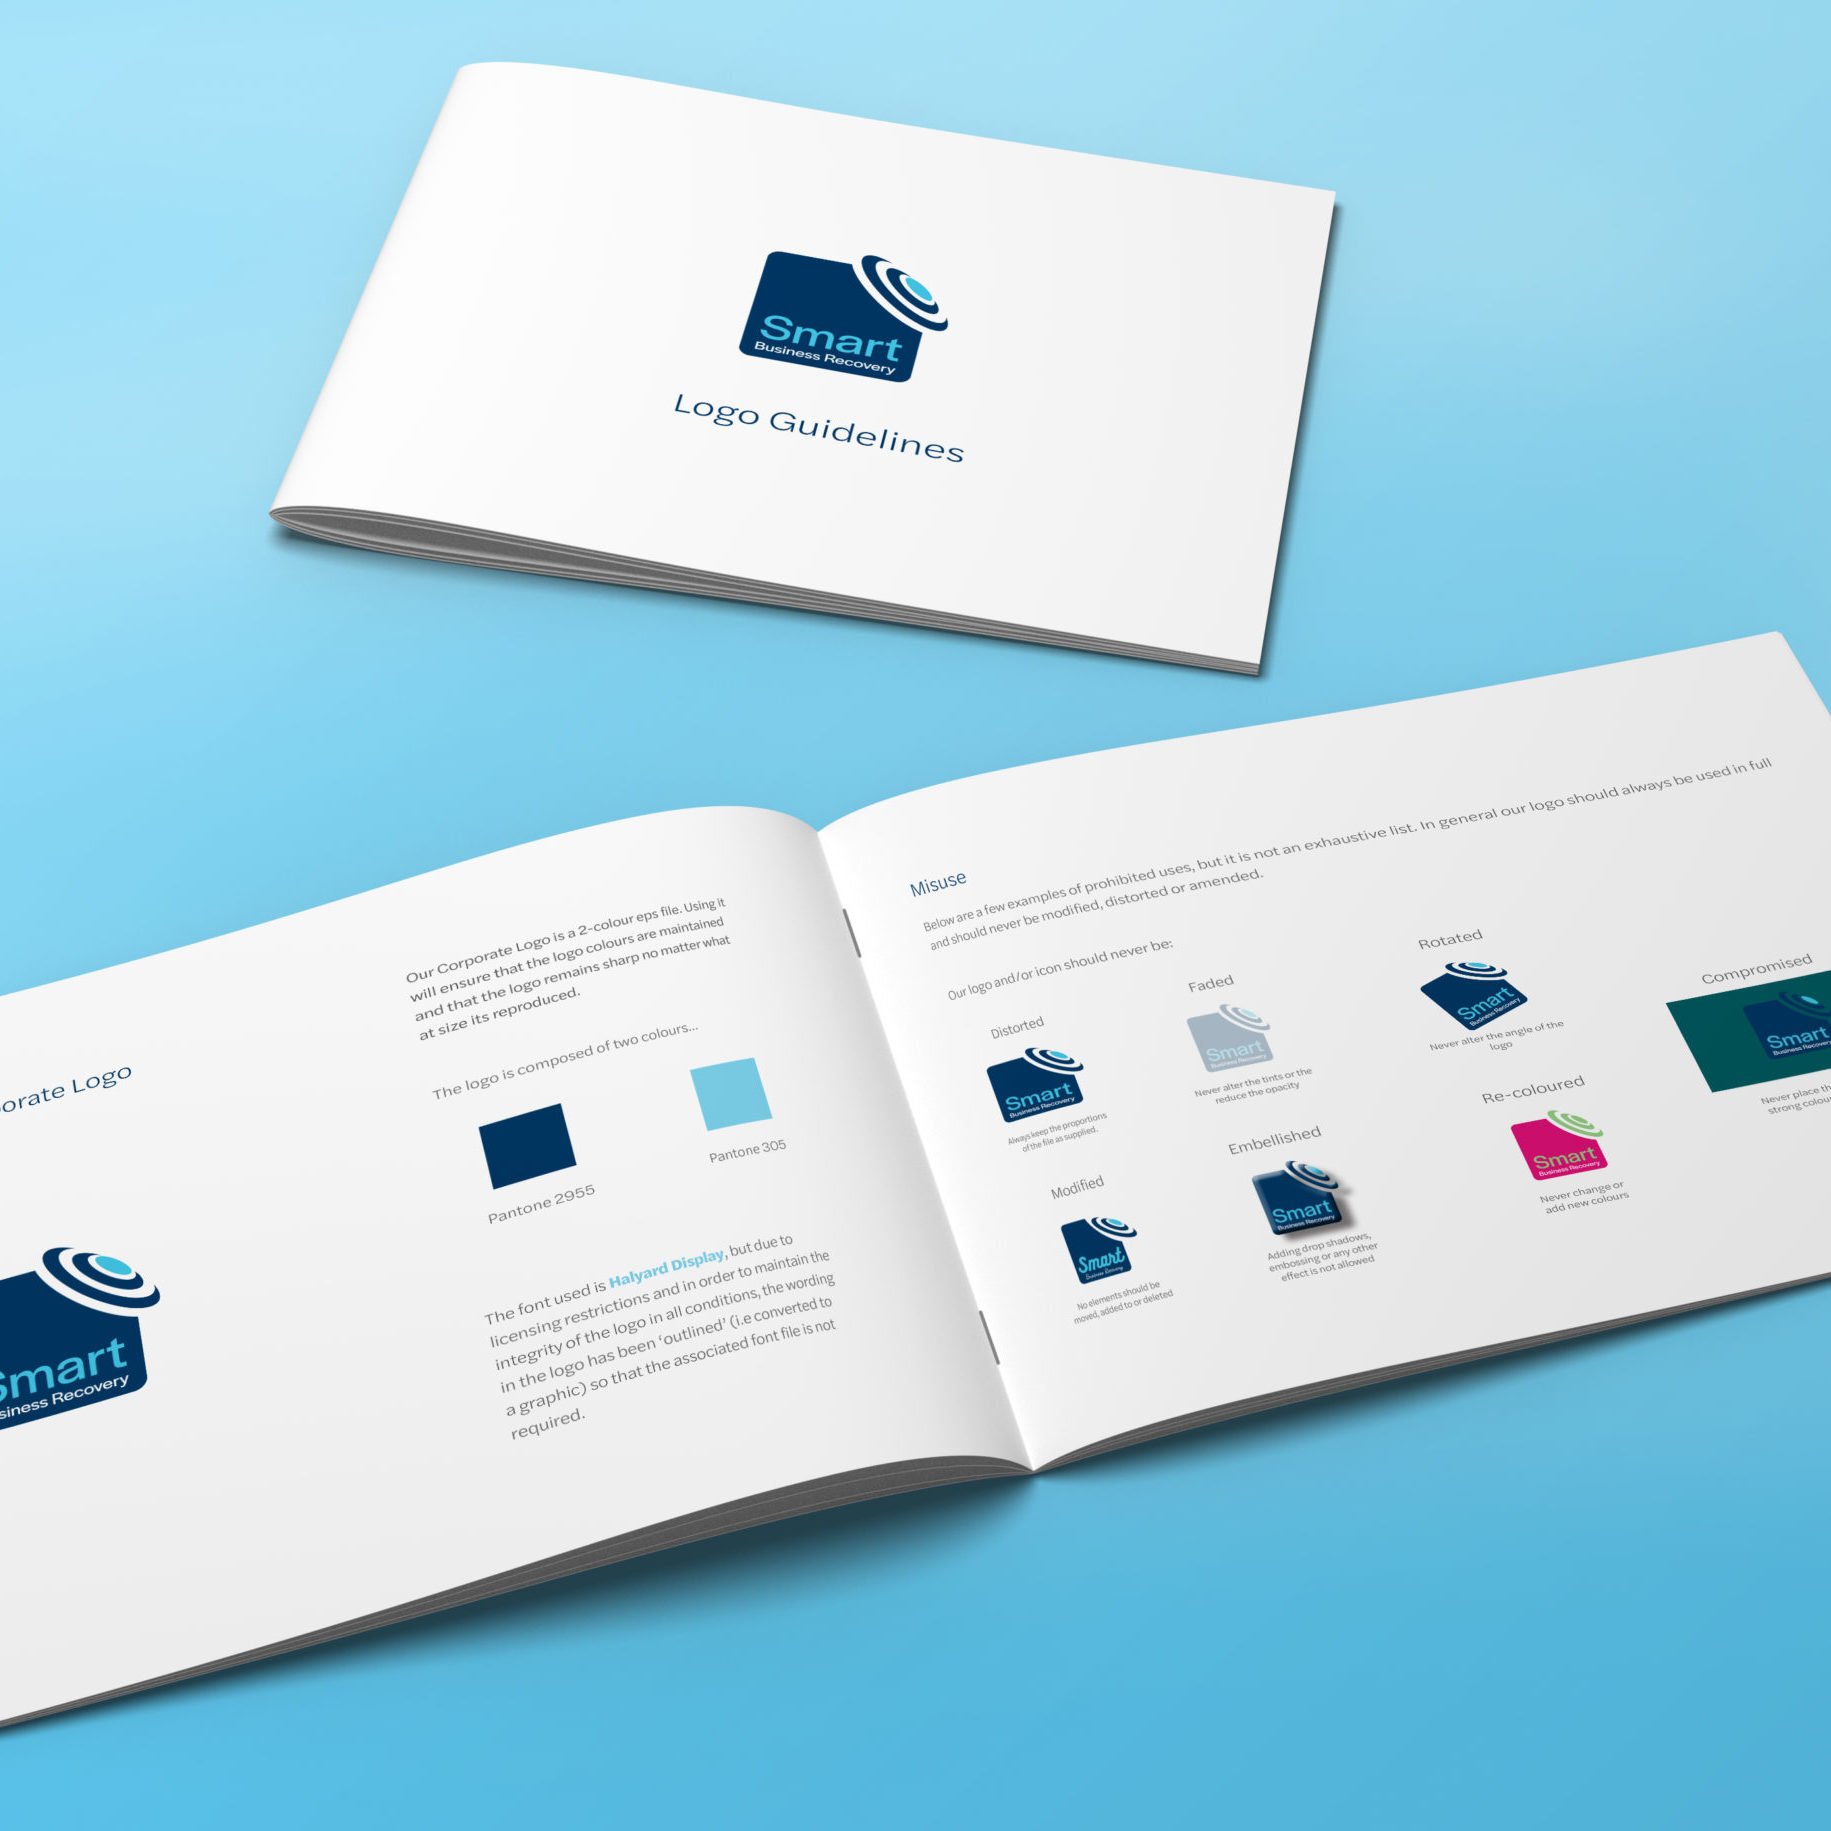 Logo Guidelines document for Smart Business Recovery